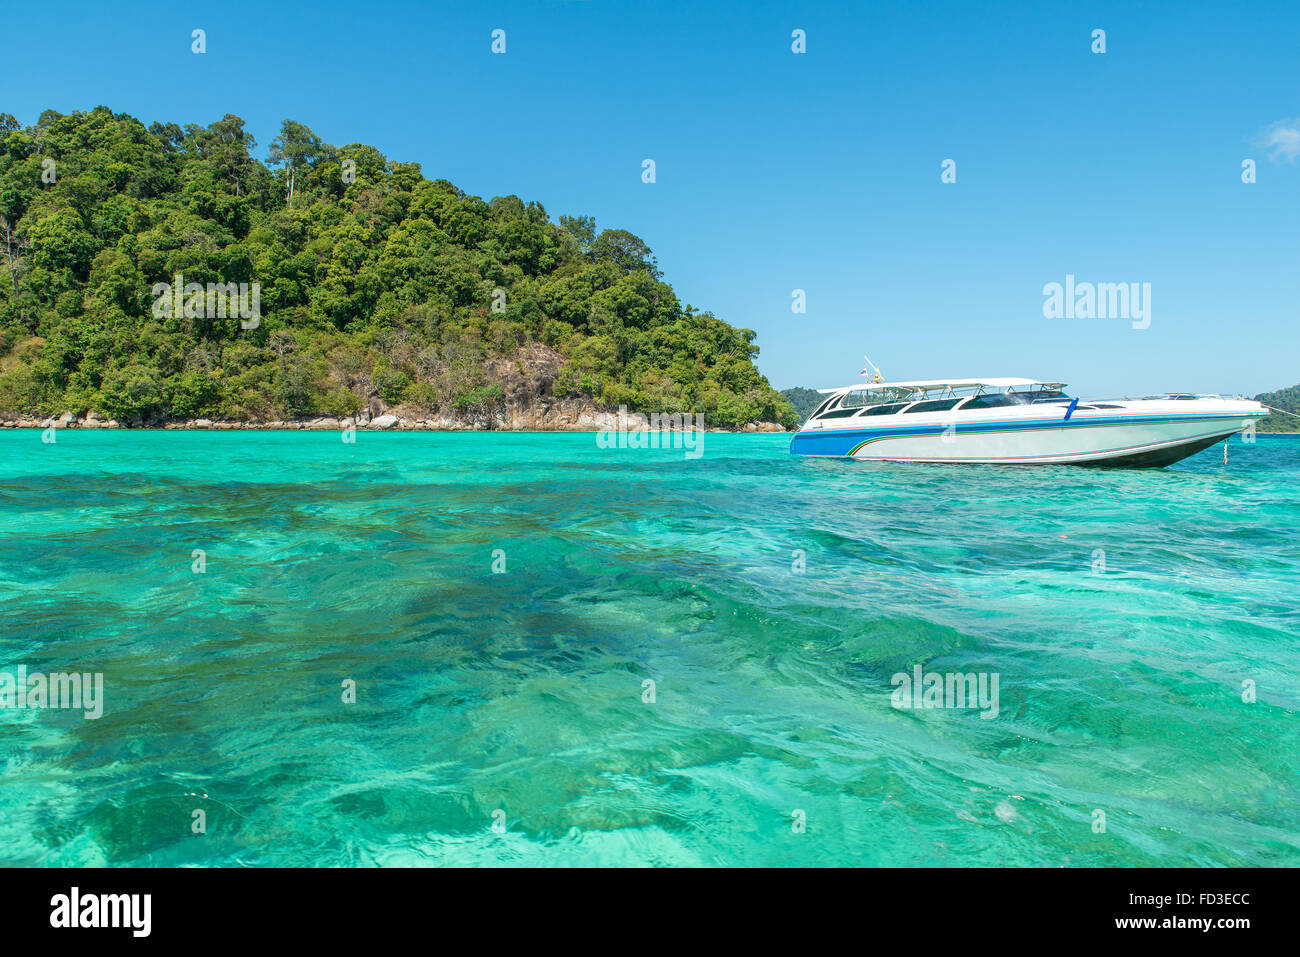 Summer, Travel, Vacation and Holiday concept - Speedboat in Corals Island Sea in Phuket, Thailand - Stock Image